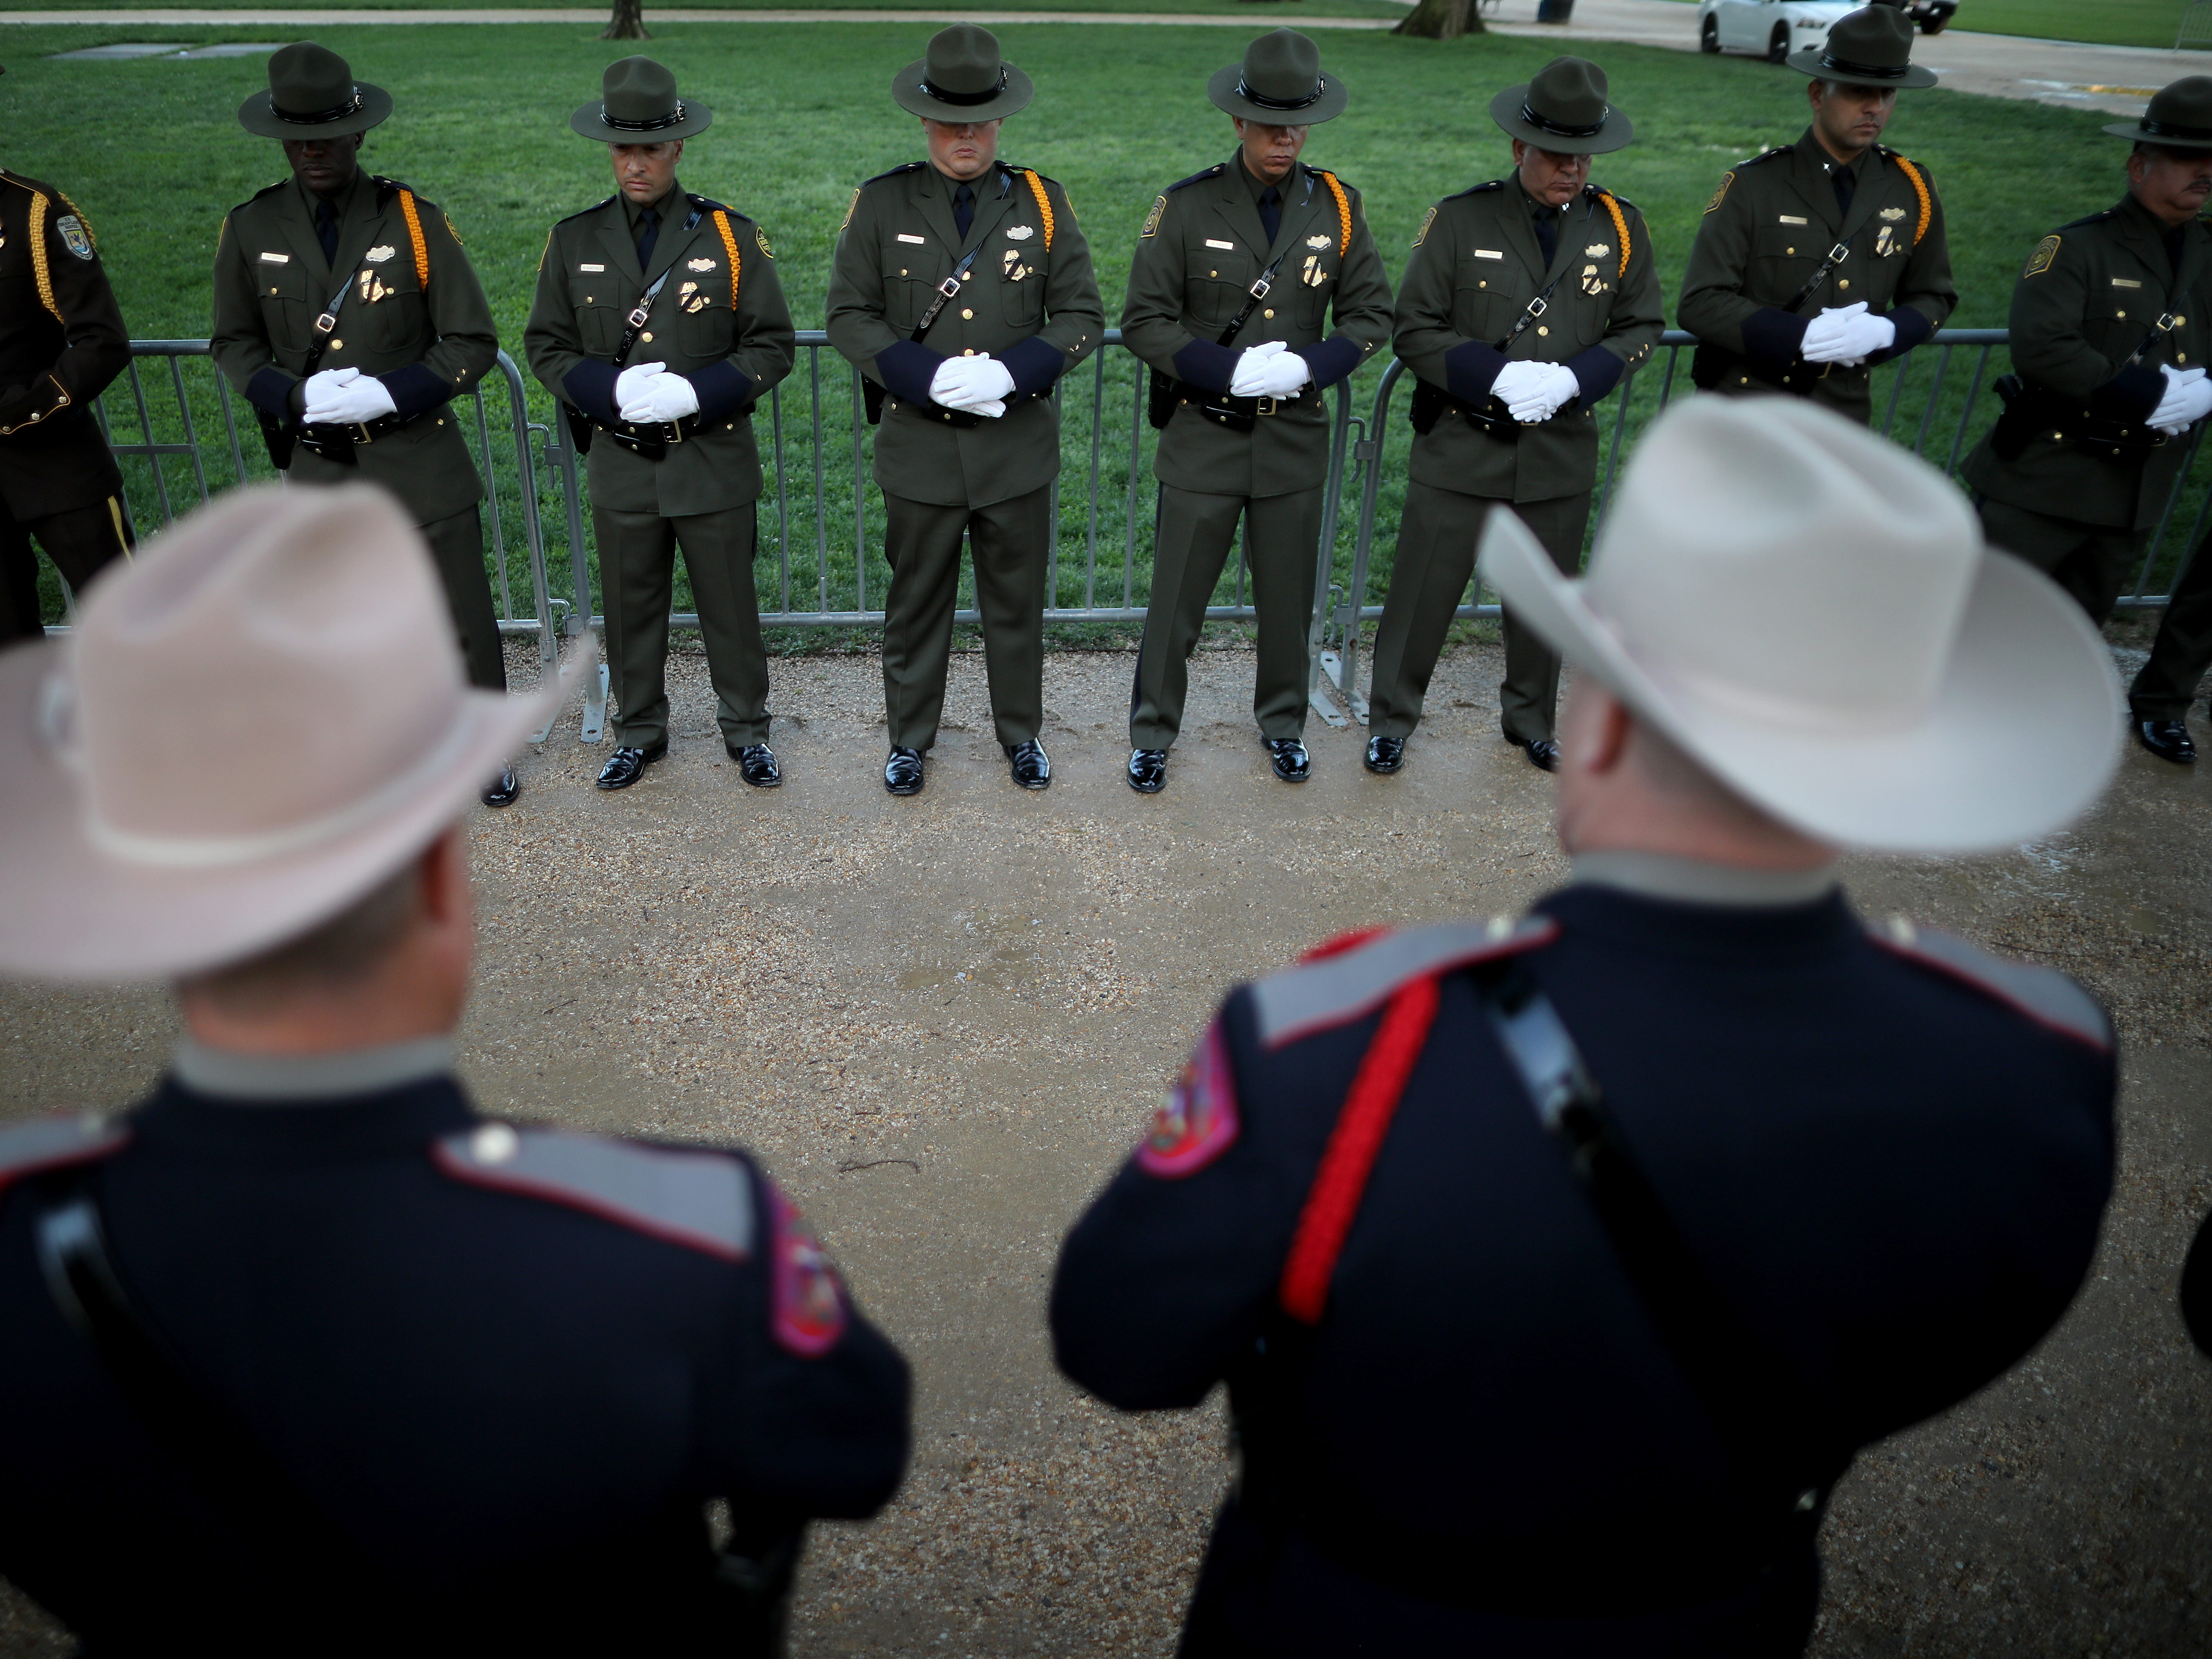 Law enforcement officers prepare for the National Police Week 31st Annual Candlelight Vigil on the National Mall.